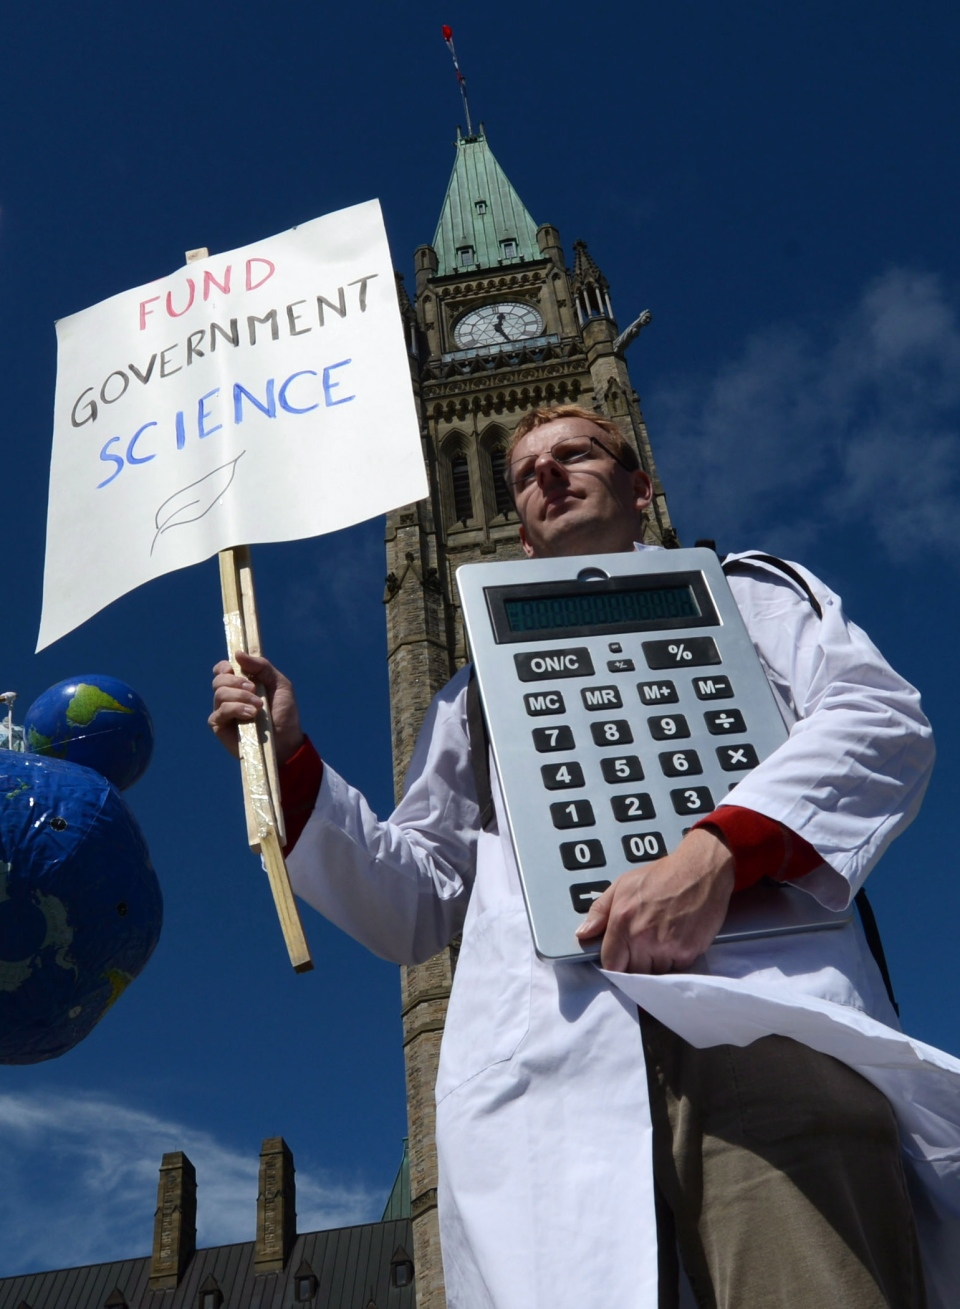 Scientists rally on Parliament Hill in Ottawa as Canadian scientists and their supporters hold demonstrations across the country, calling on the federal government to stop cutting scientific research and muzzling its scientists, on Monday, Sept. 16, 2013. (Sean Kilpatrick / THE CANADIAN PRESS)